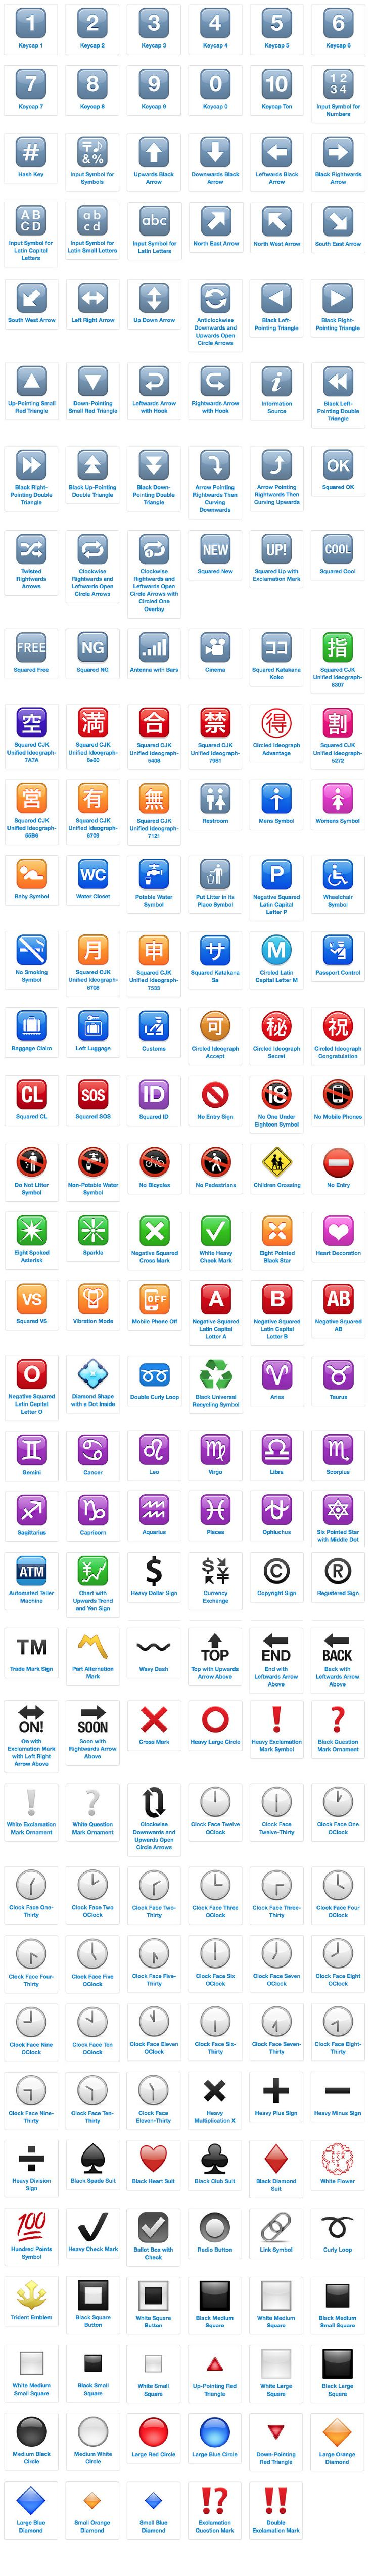 iphone emoji meanings of the symbols 13 best emoji explosion images on smileys the 19350